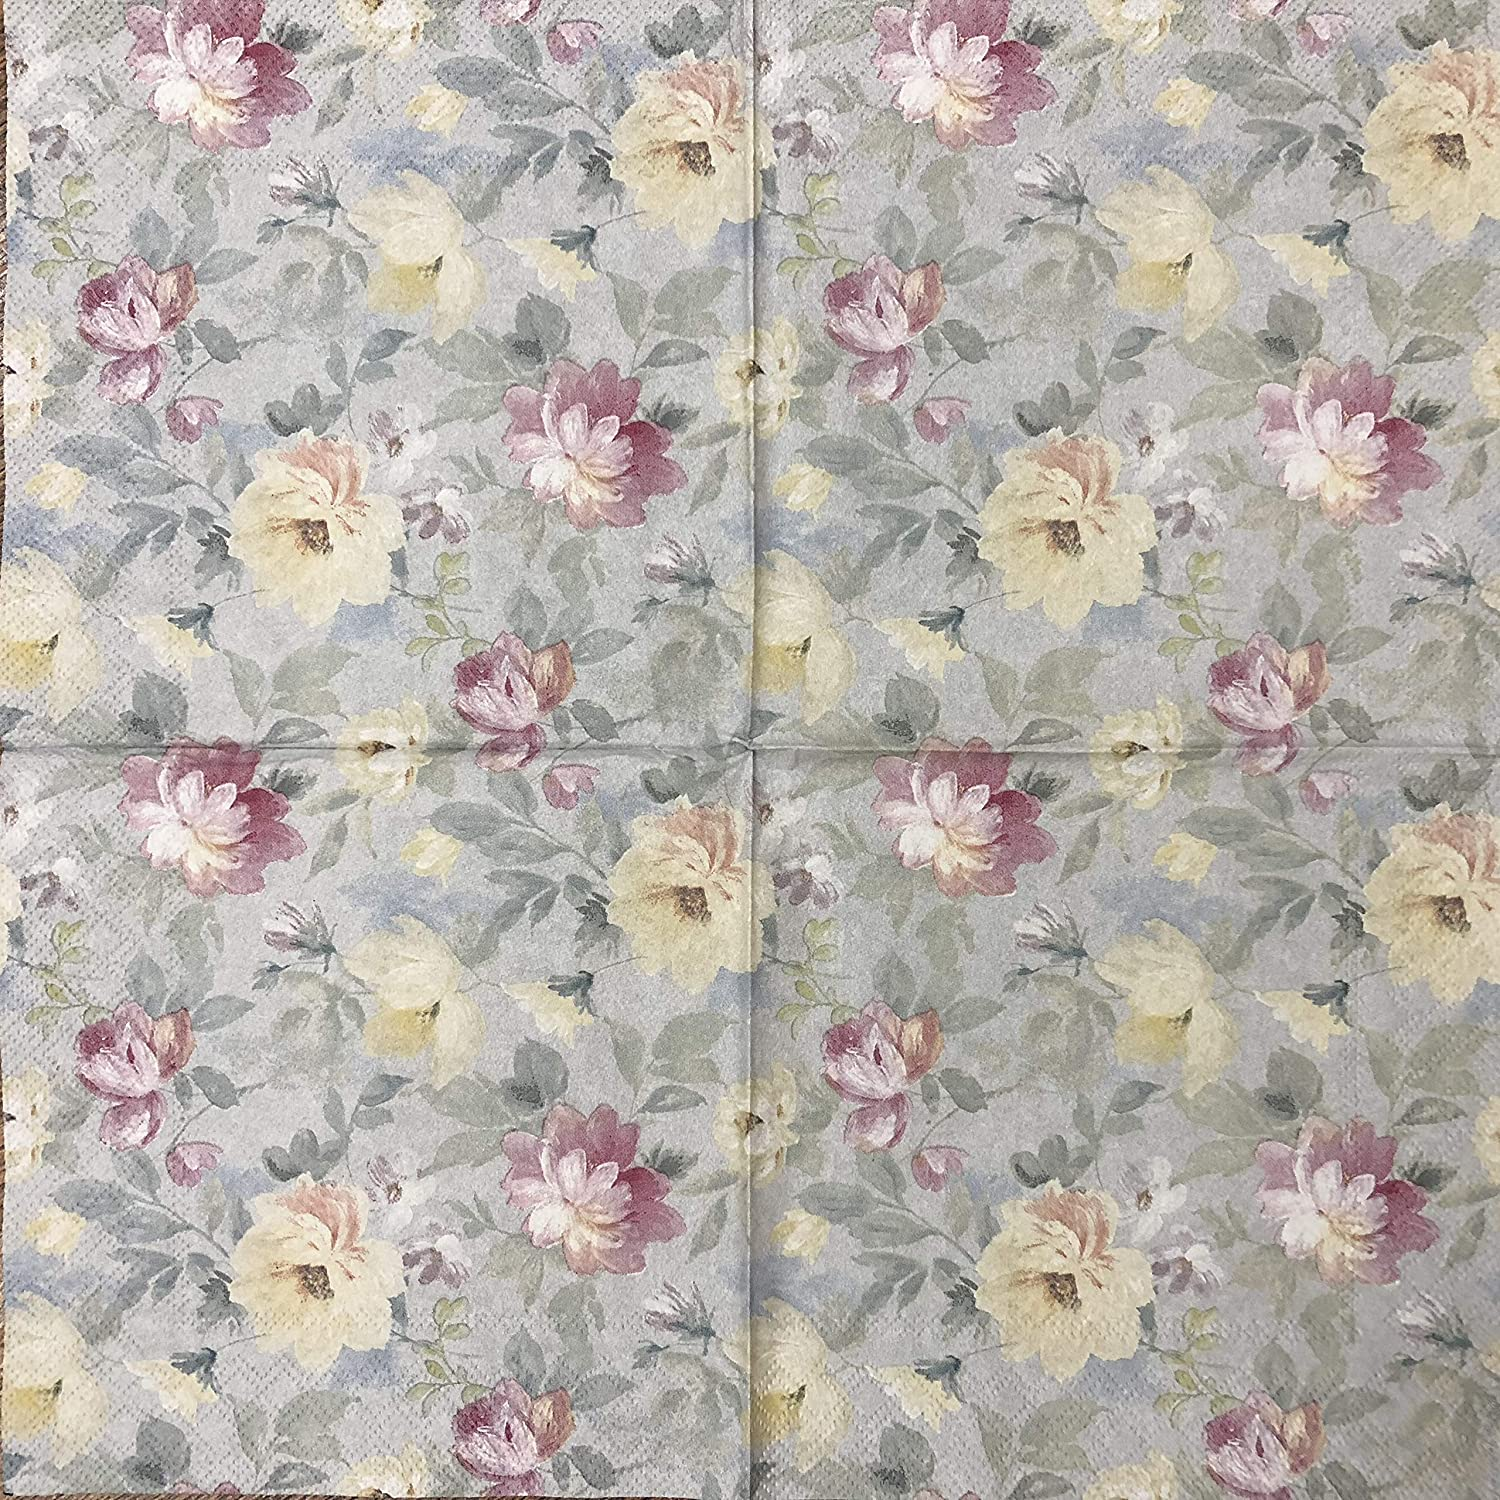 2 single Paper Napkins for DECOUPAGE Crafts Collection Party Roses Flowers Blossom Spring